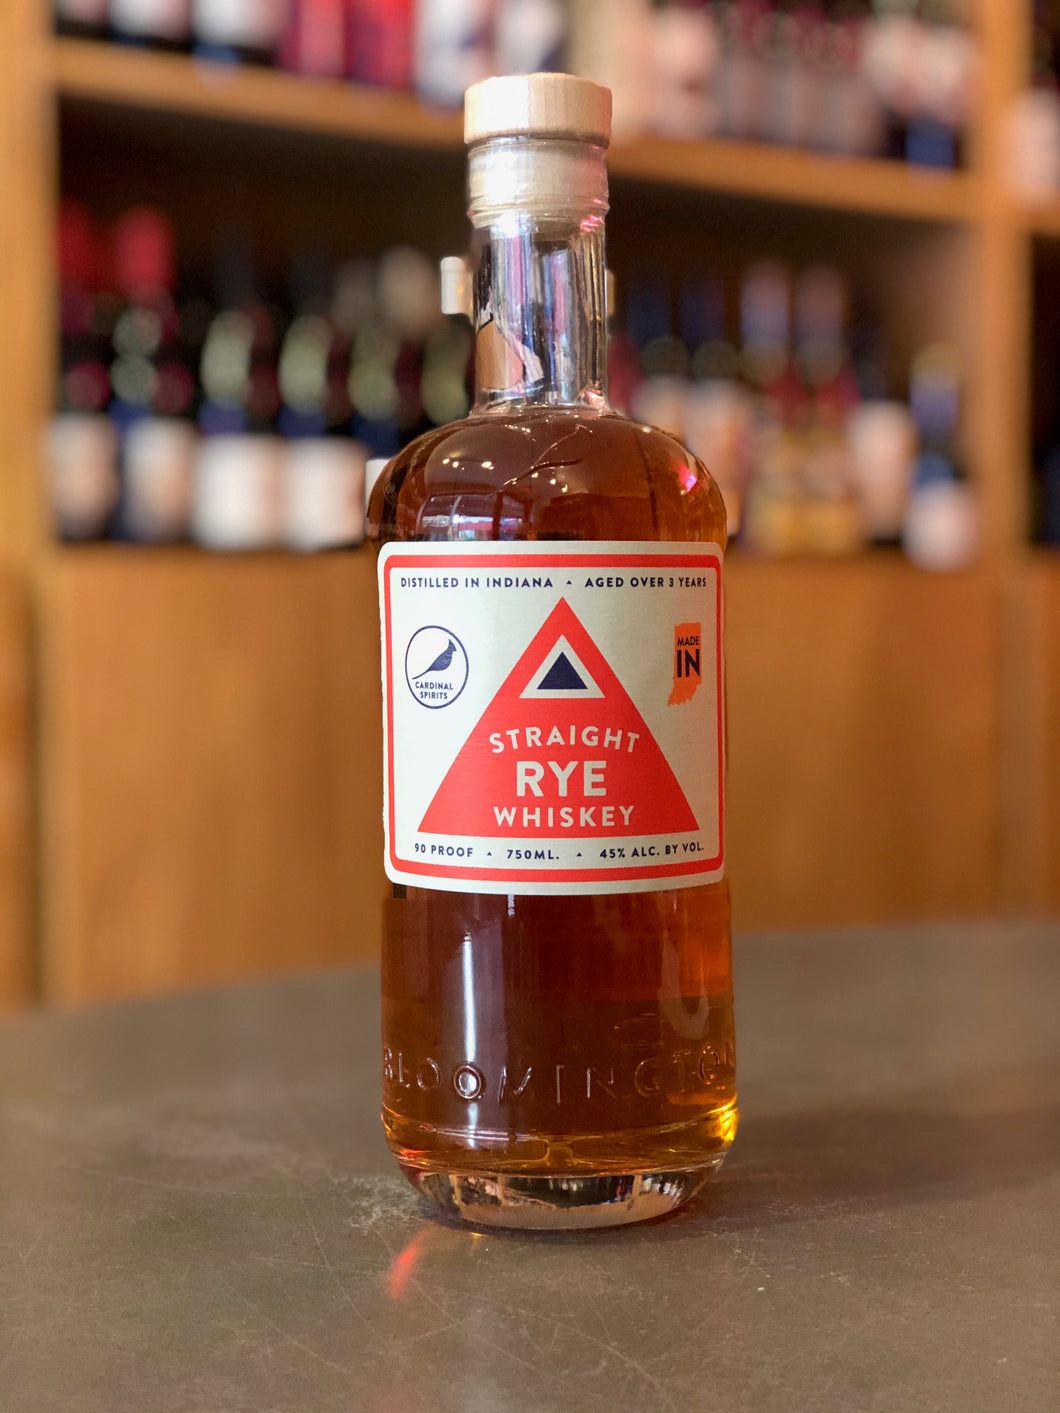 Cardinal Spirits 3 Year Old Straight Rye Whiskey